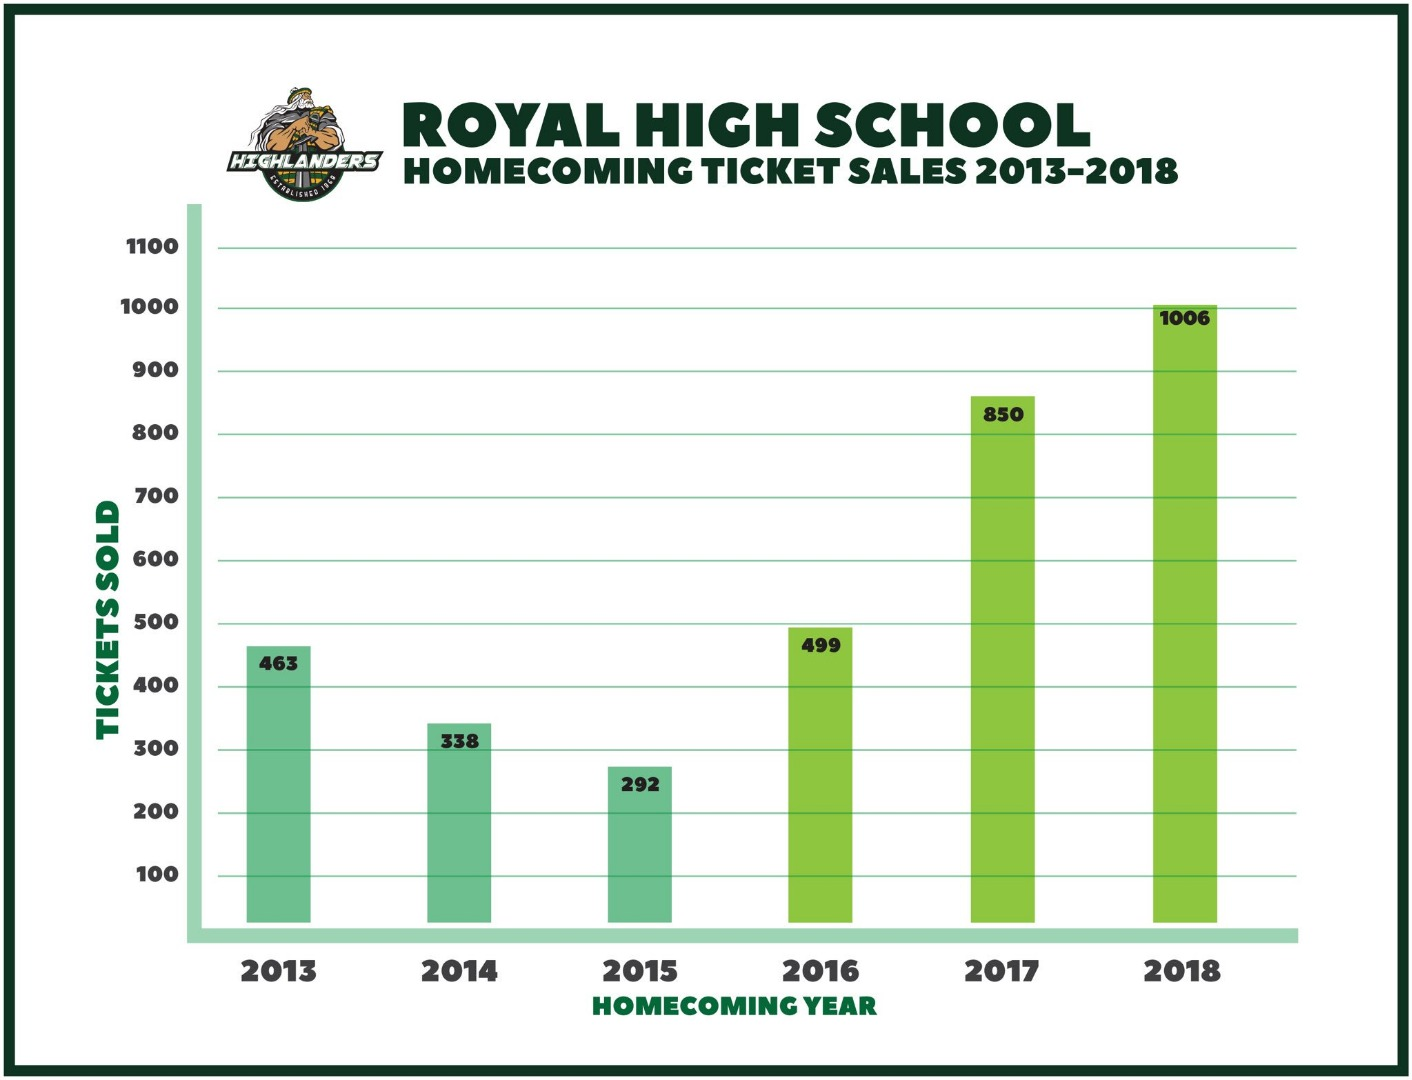 Homecoming ticket sales